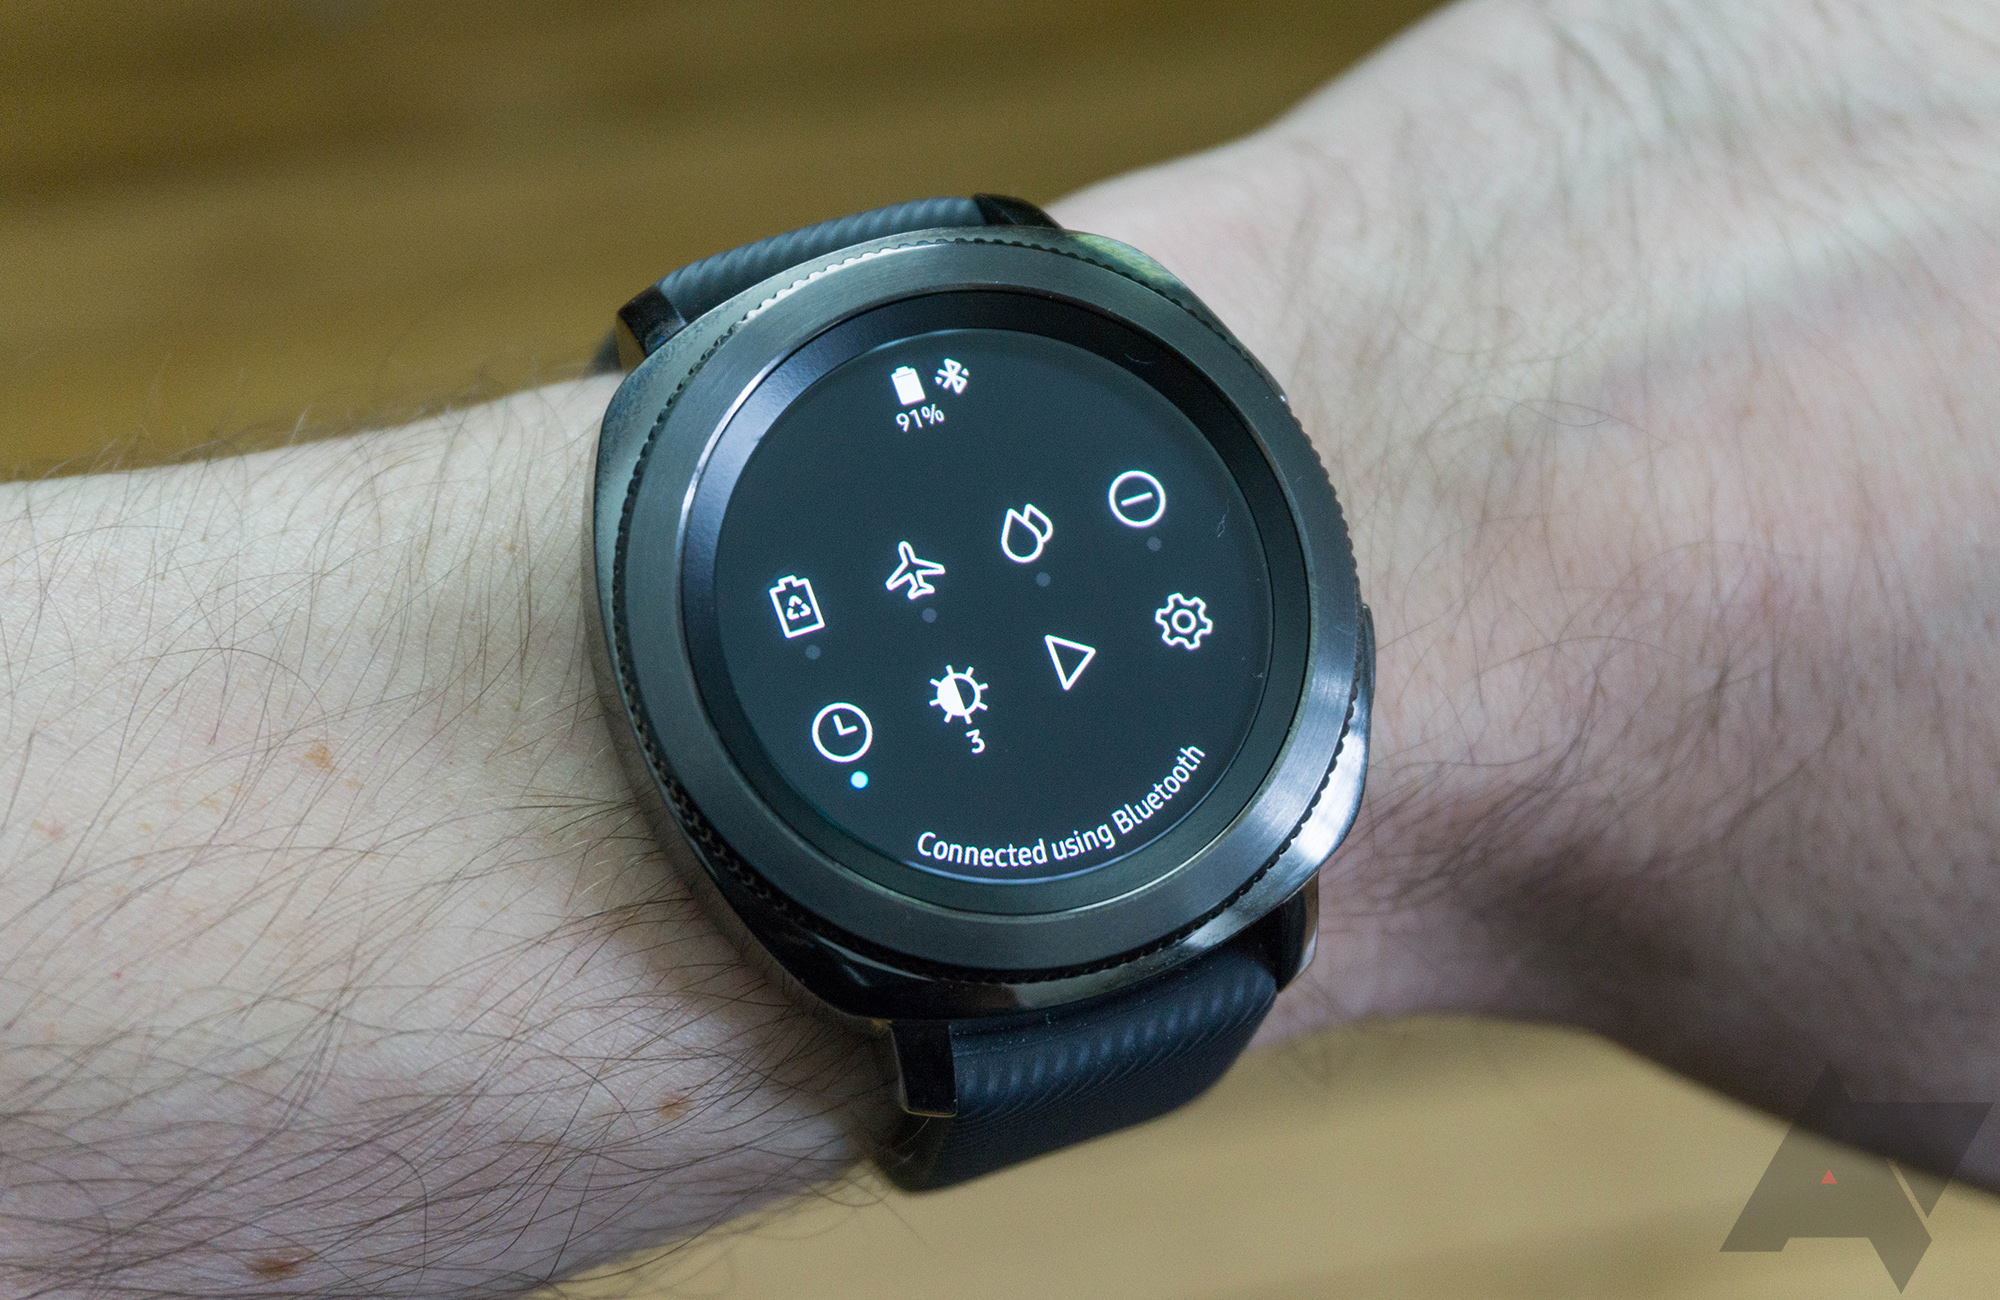 Samsung Gear Sport Review A Smartwatch Regular People Might The Pebble Smart Watch Will Include Flexible Circuit Board I Also Enjoy Quick Settings Drop Down Swipe From Top Of Screen And You Can Access System Do Not Disturb Mode Play Pause